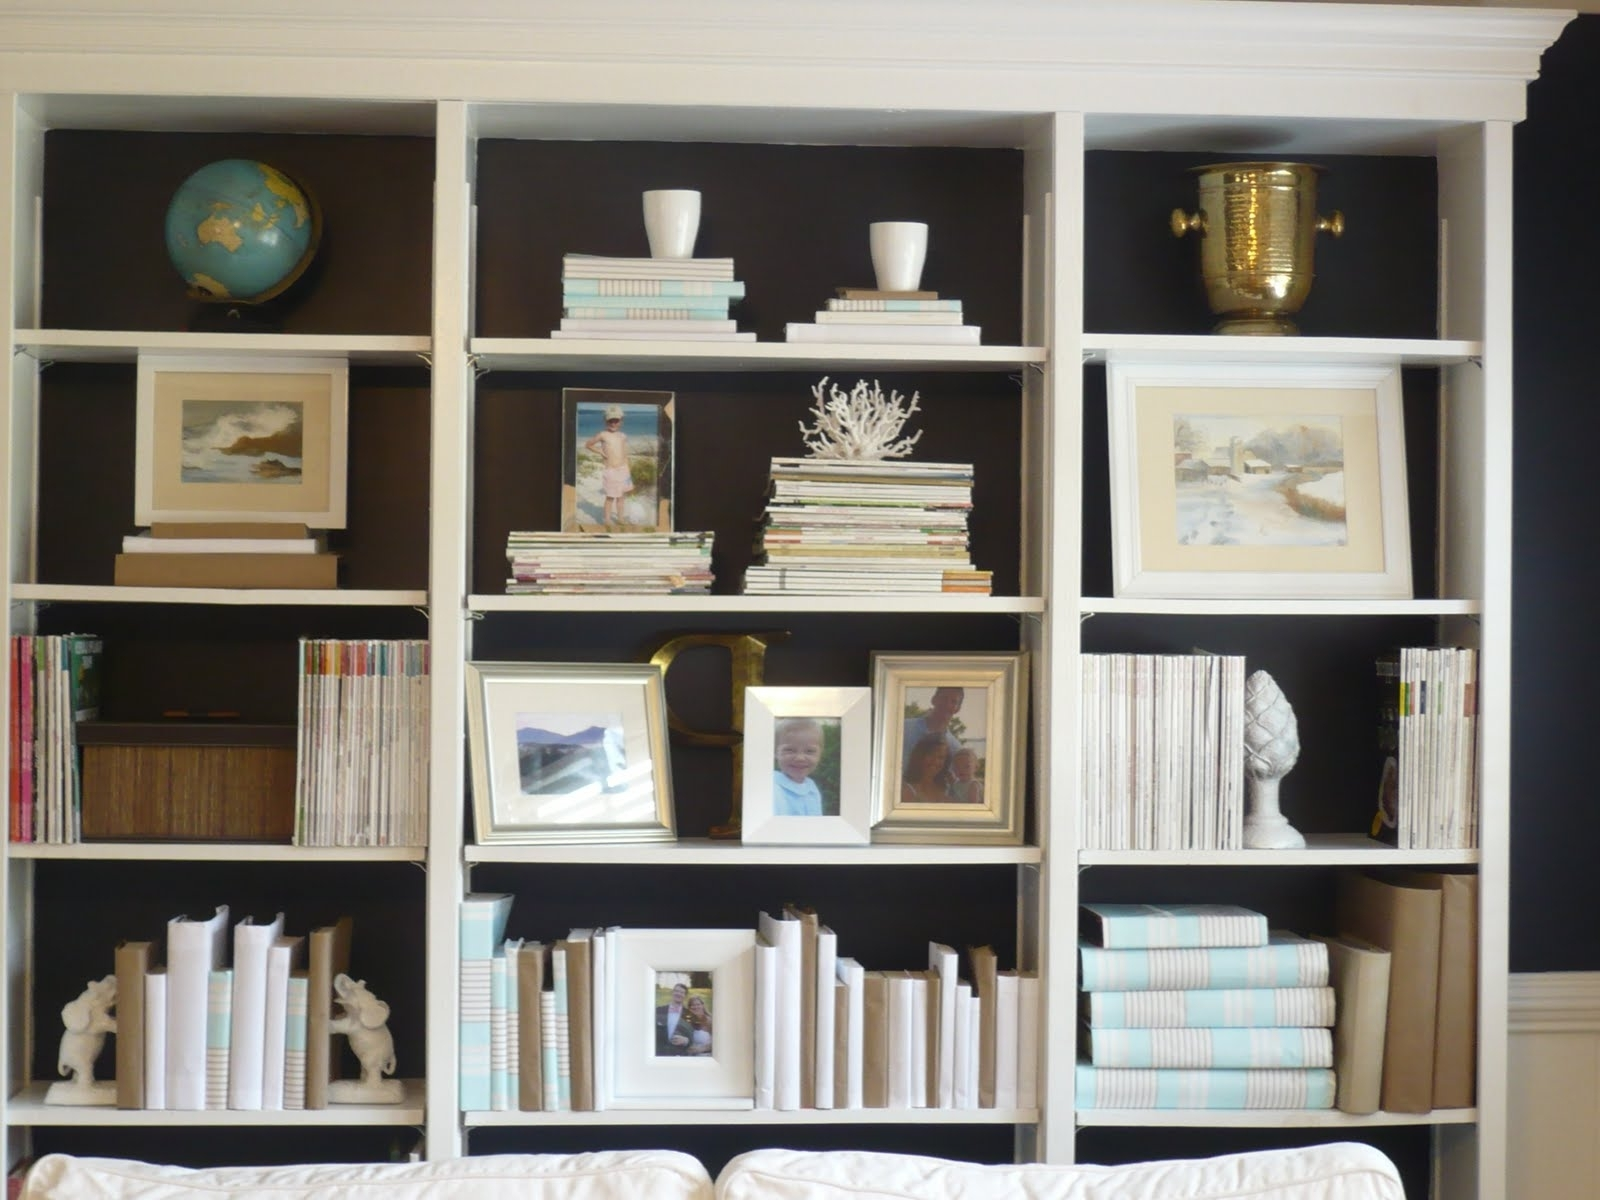 Preferred Best Cool Painted Bookshelves Color Chic Inspiration ~ Idolza With Regard To Painted Bookshelves (View 8 of 15)